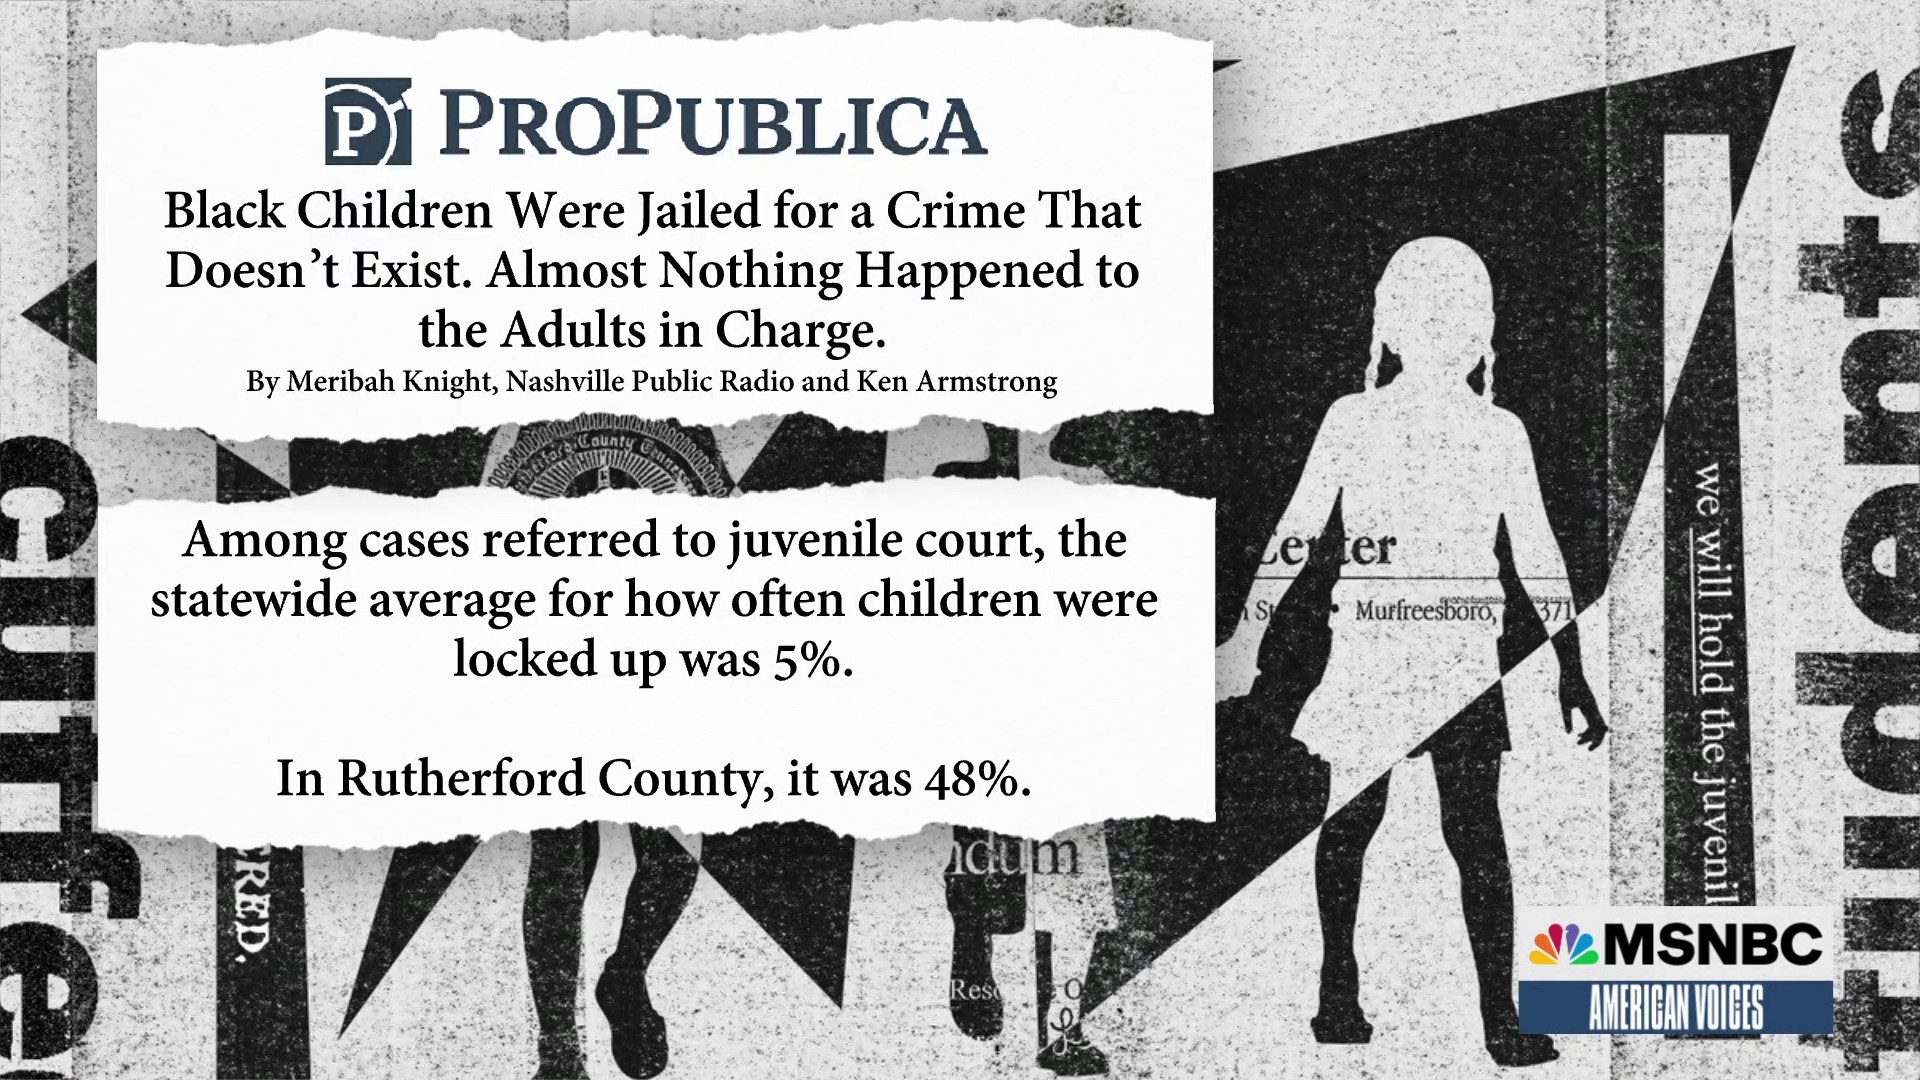 New report shows Rutherford County, Tennessee's juvenile justice system has a staggering history of jailing children